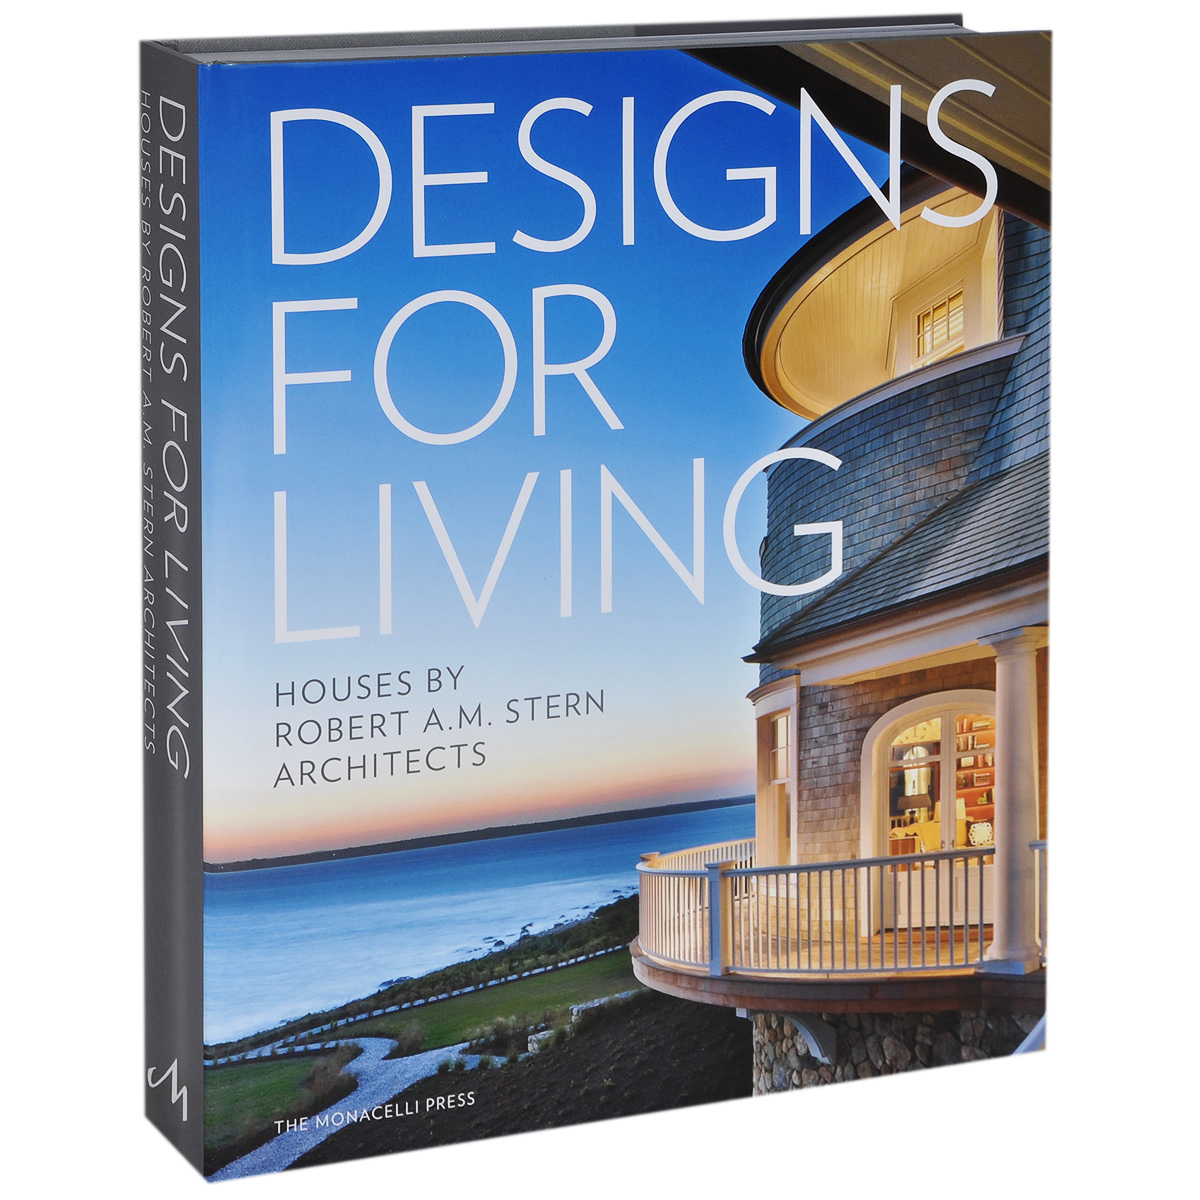 Designs for Living: The Houses of Robert A. M. Stern Architects grant robert the art of living